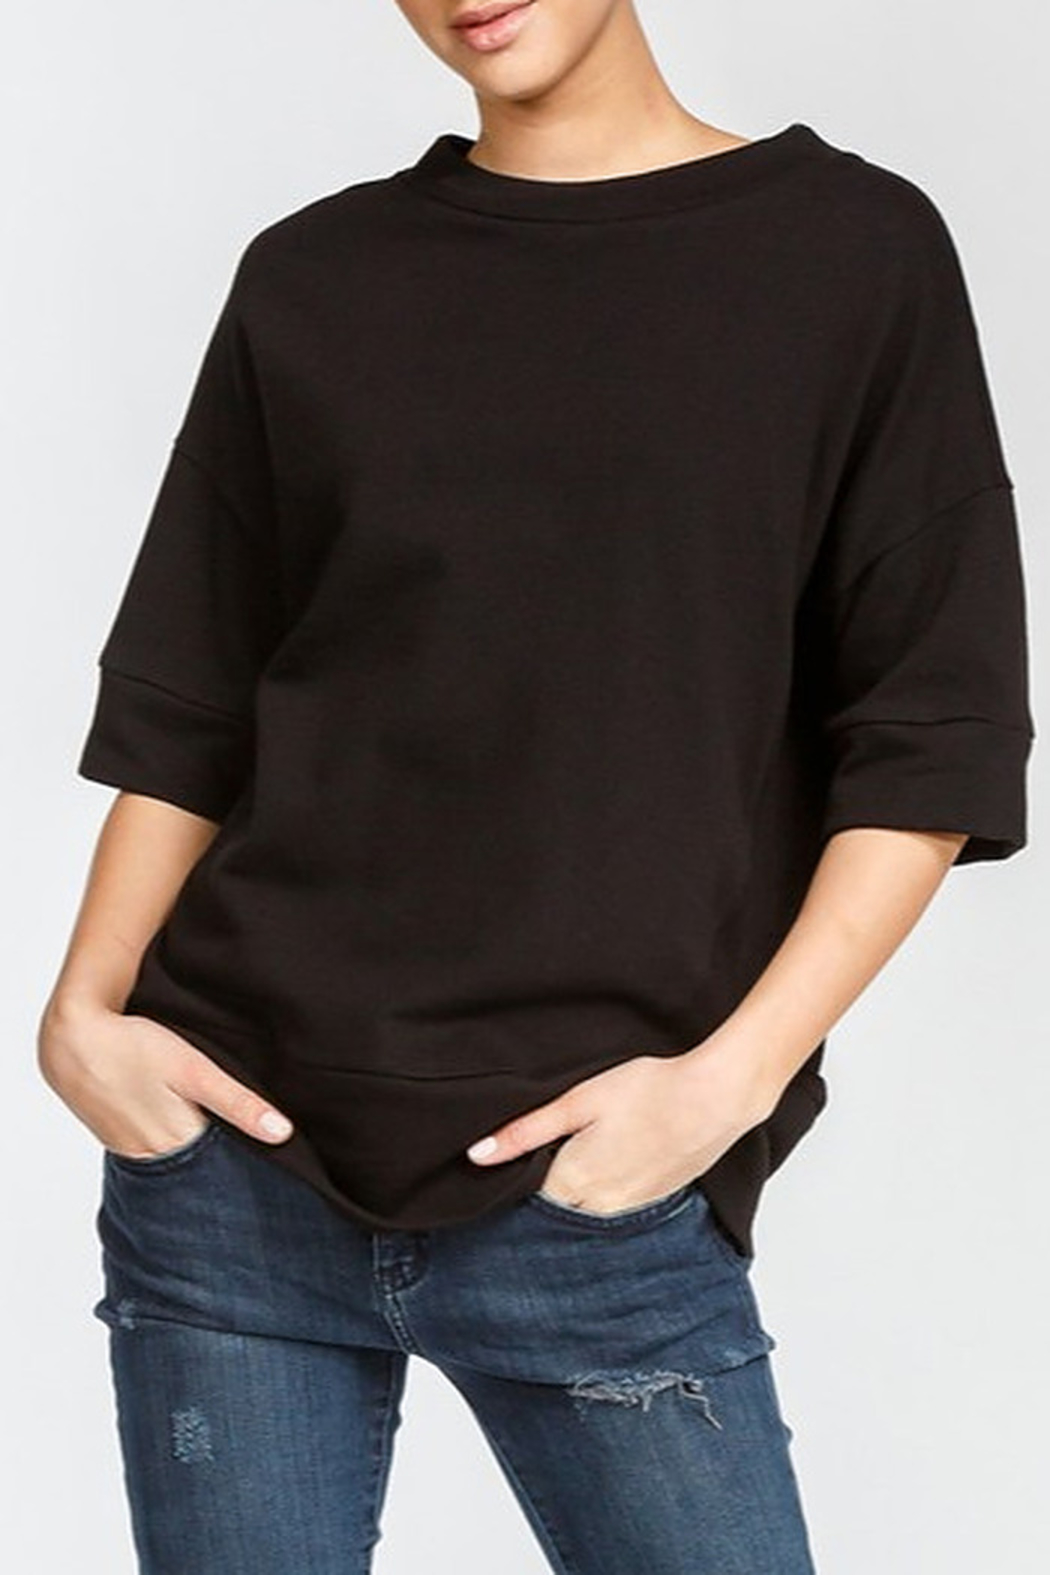 Cherish Loose Fit Short Sleeve Sweatshirt - Main Image